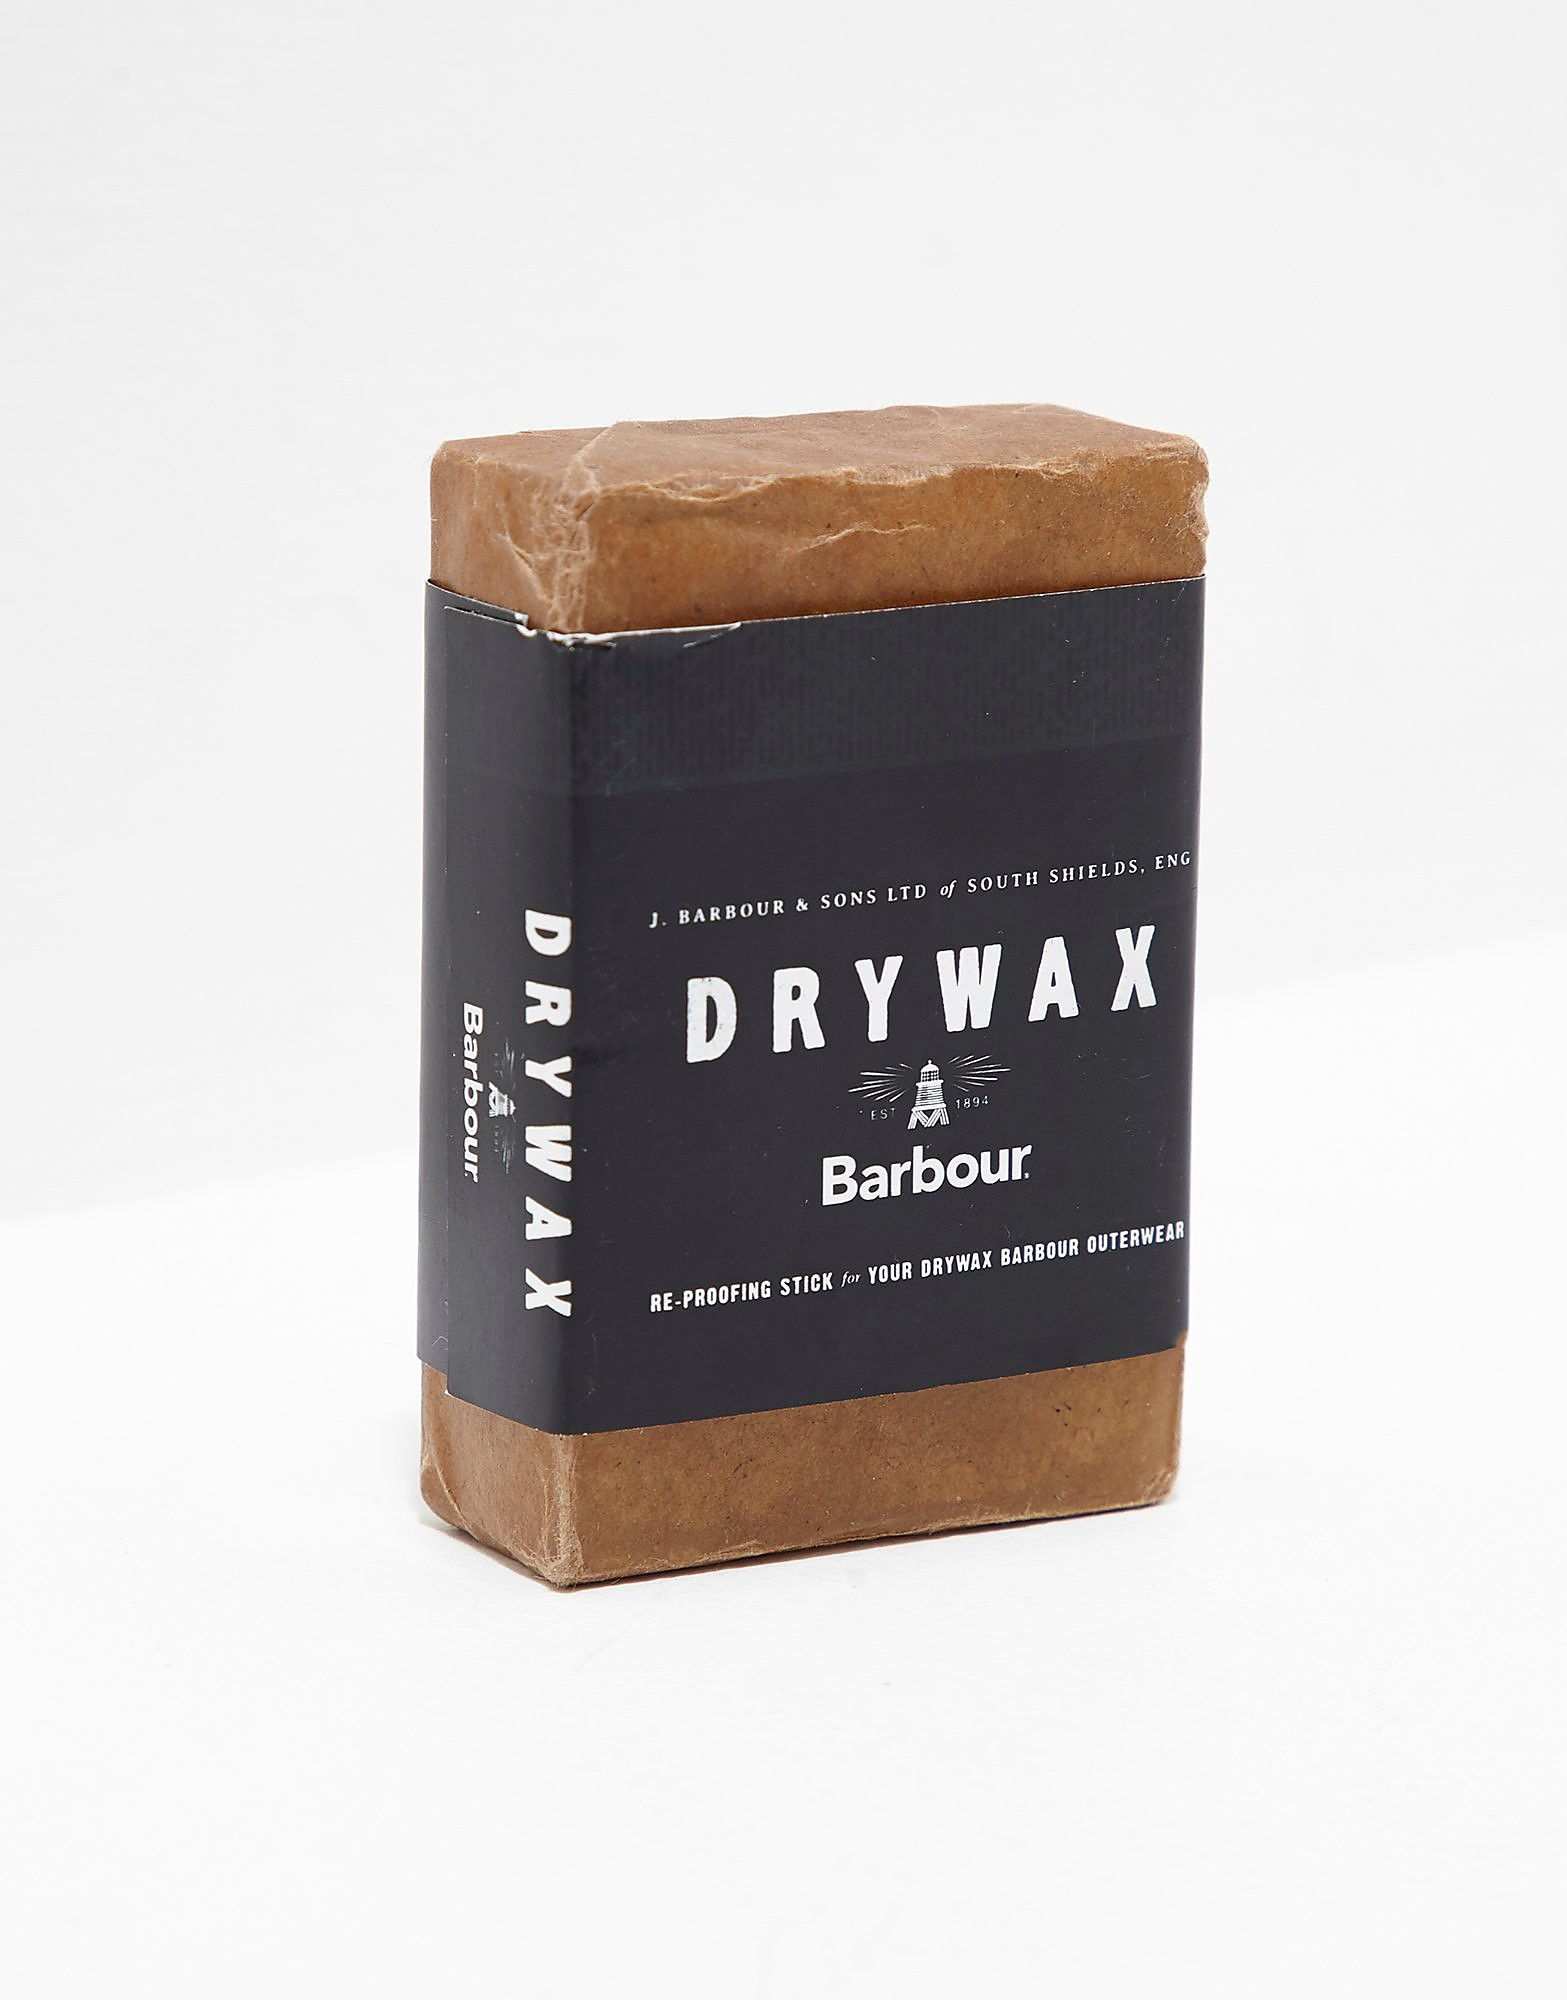 Barbour Dry Wax